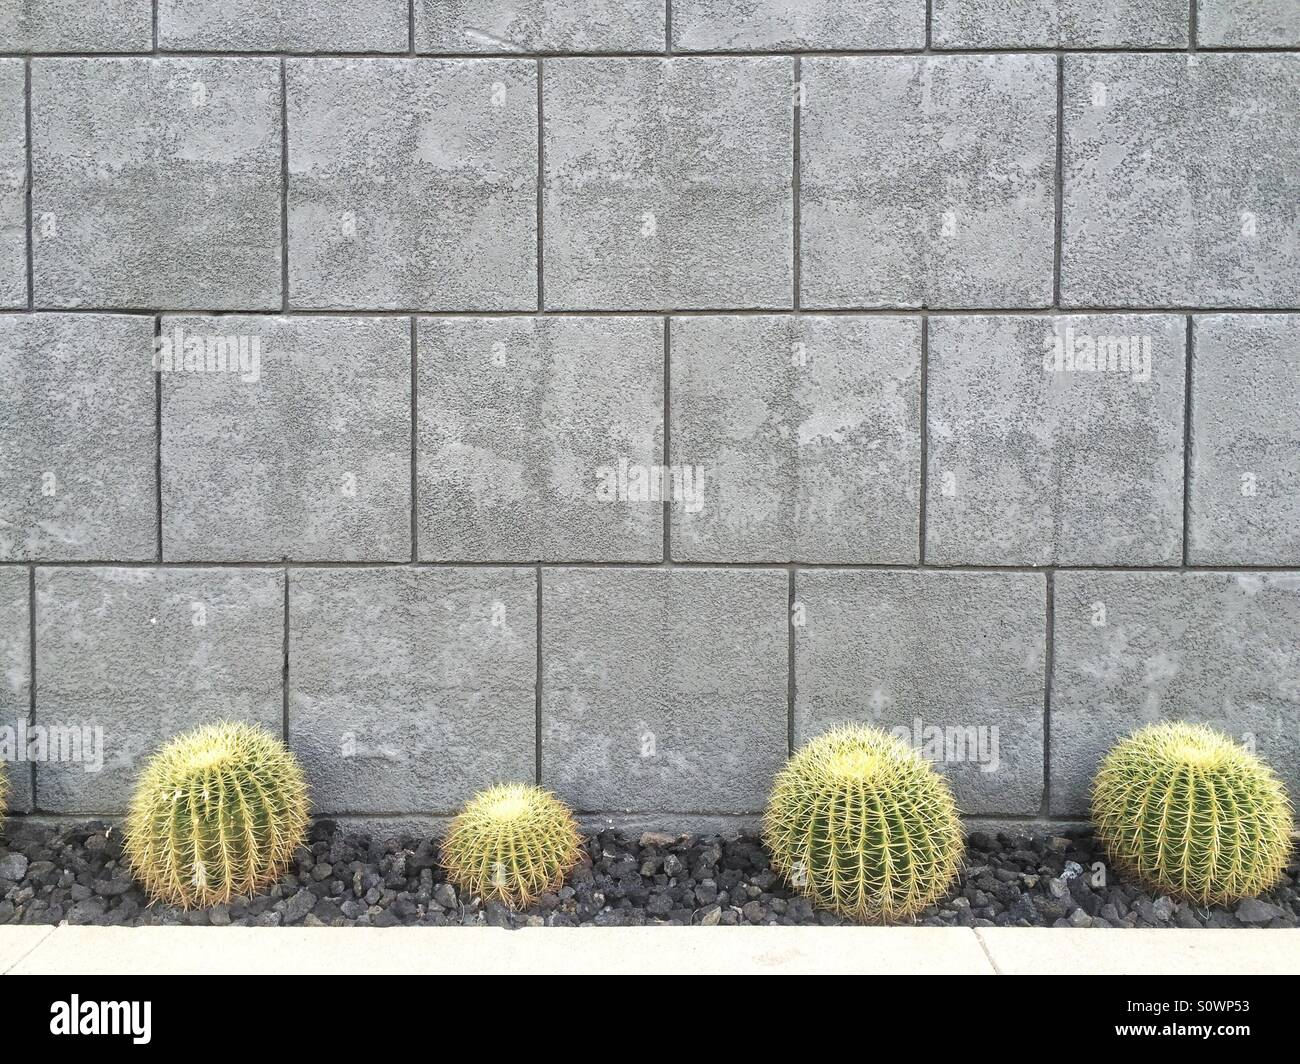 Cactus in front of building, Palm Springs, California Stock Photo